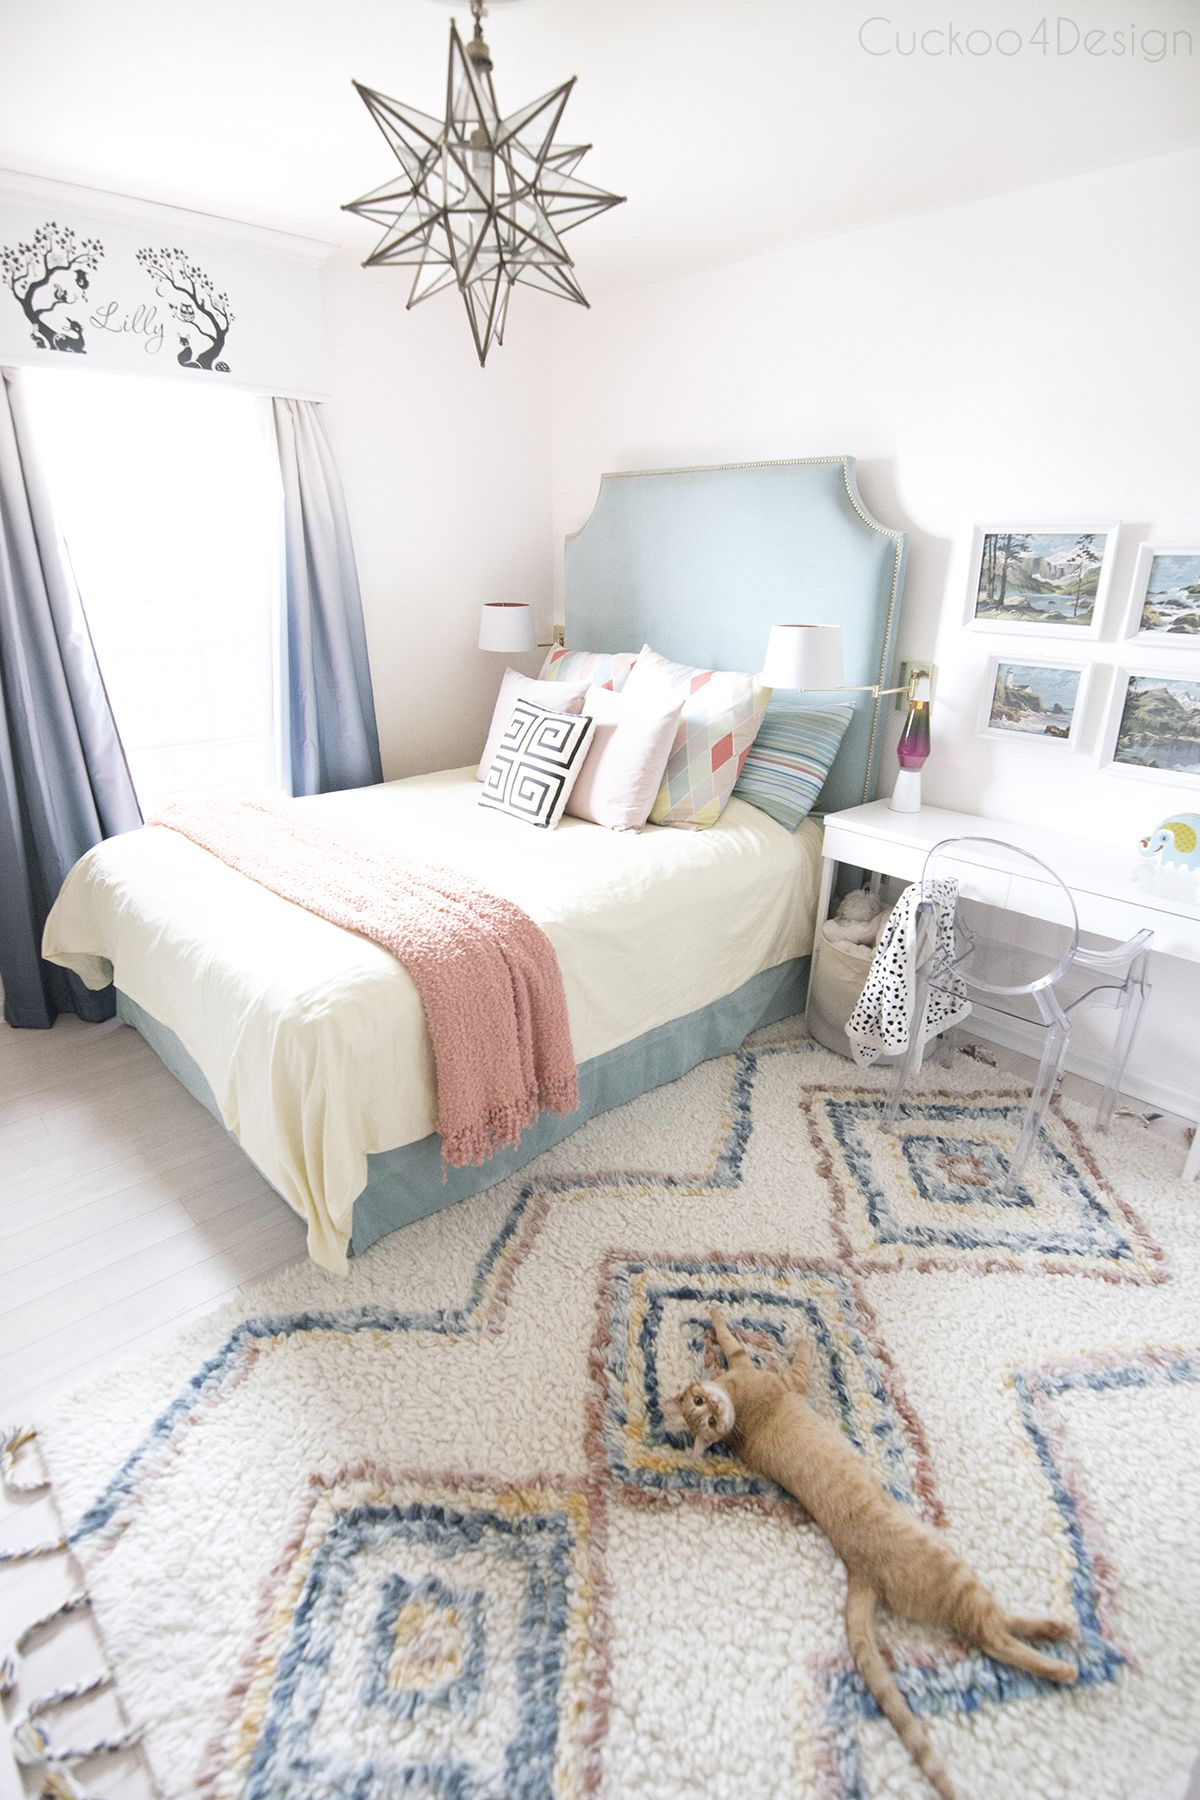 A New Beautiful Rug For My Daughter Cuckoo4design Girls Blue Bedroom Bedroom Themes Girl Bedroom Decor